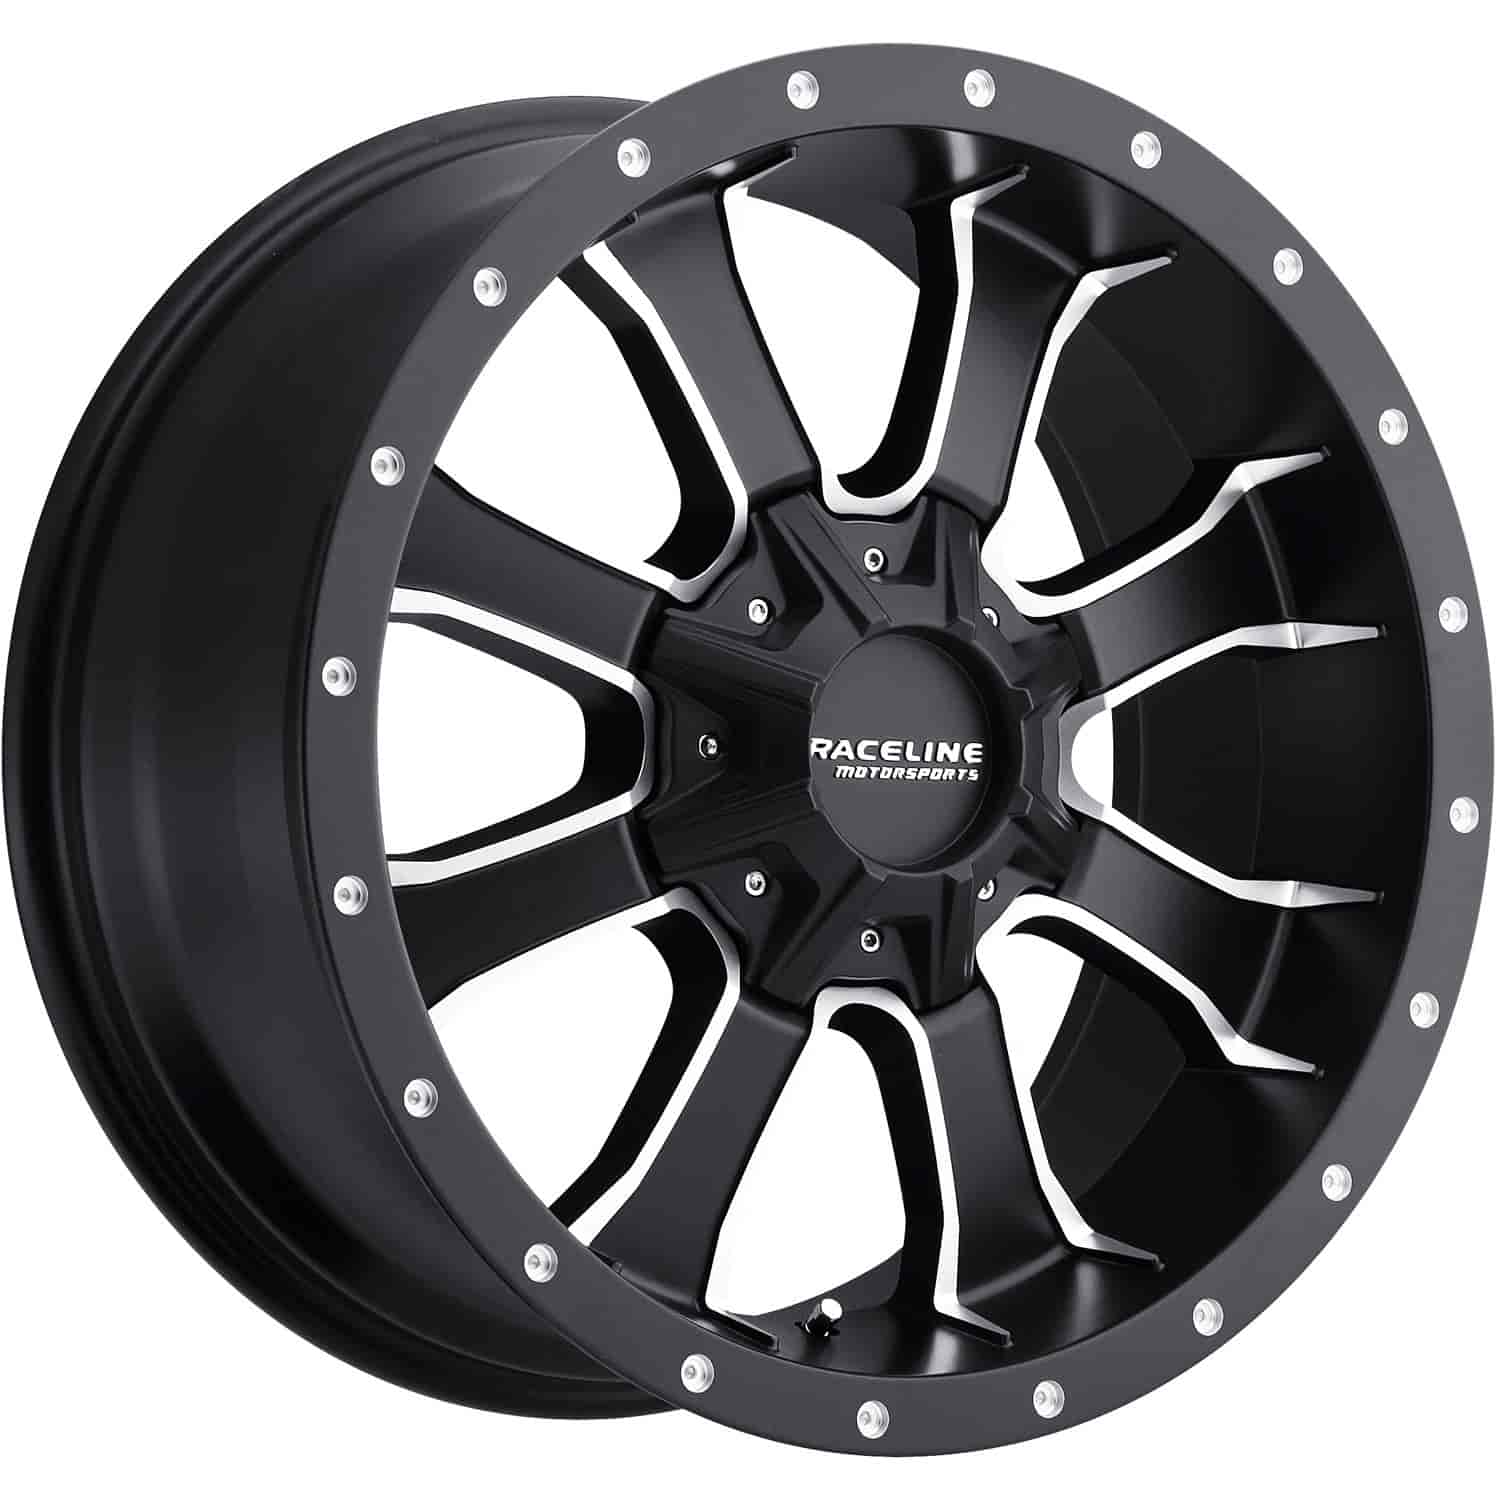 Raceline Wheels 927M-7909500